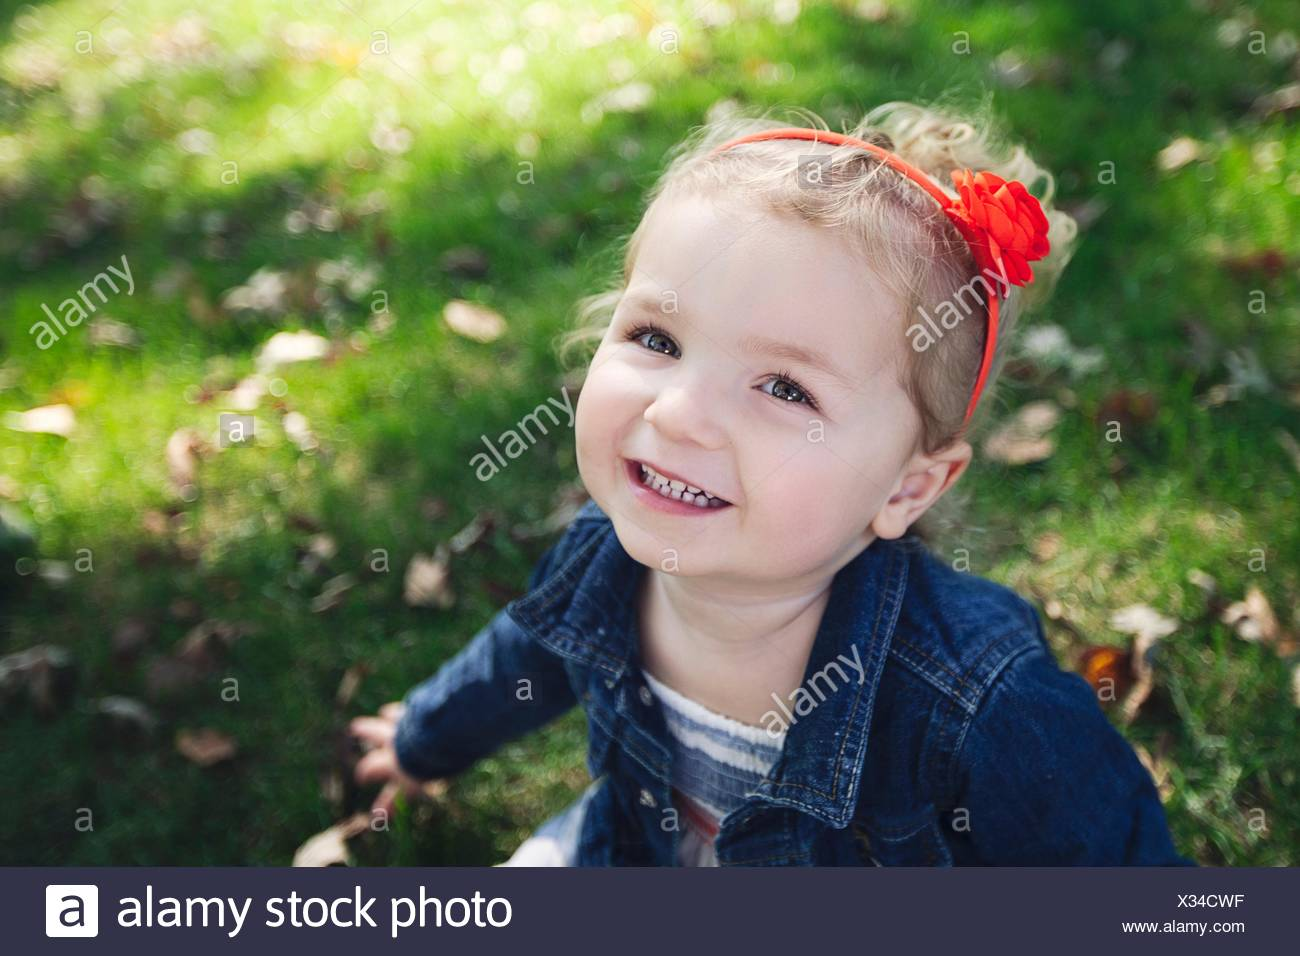 High angle portrait of girl with red hairband wearing denim jacket looking at camera smiling - Stock Image